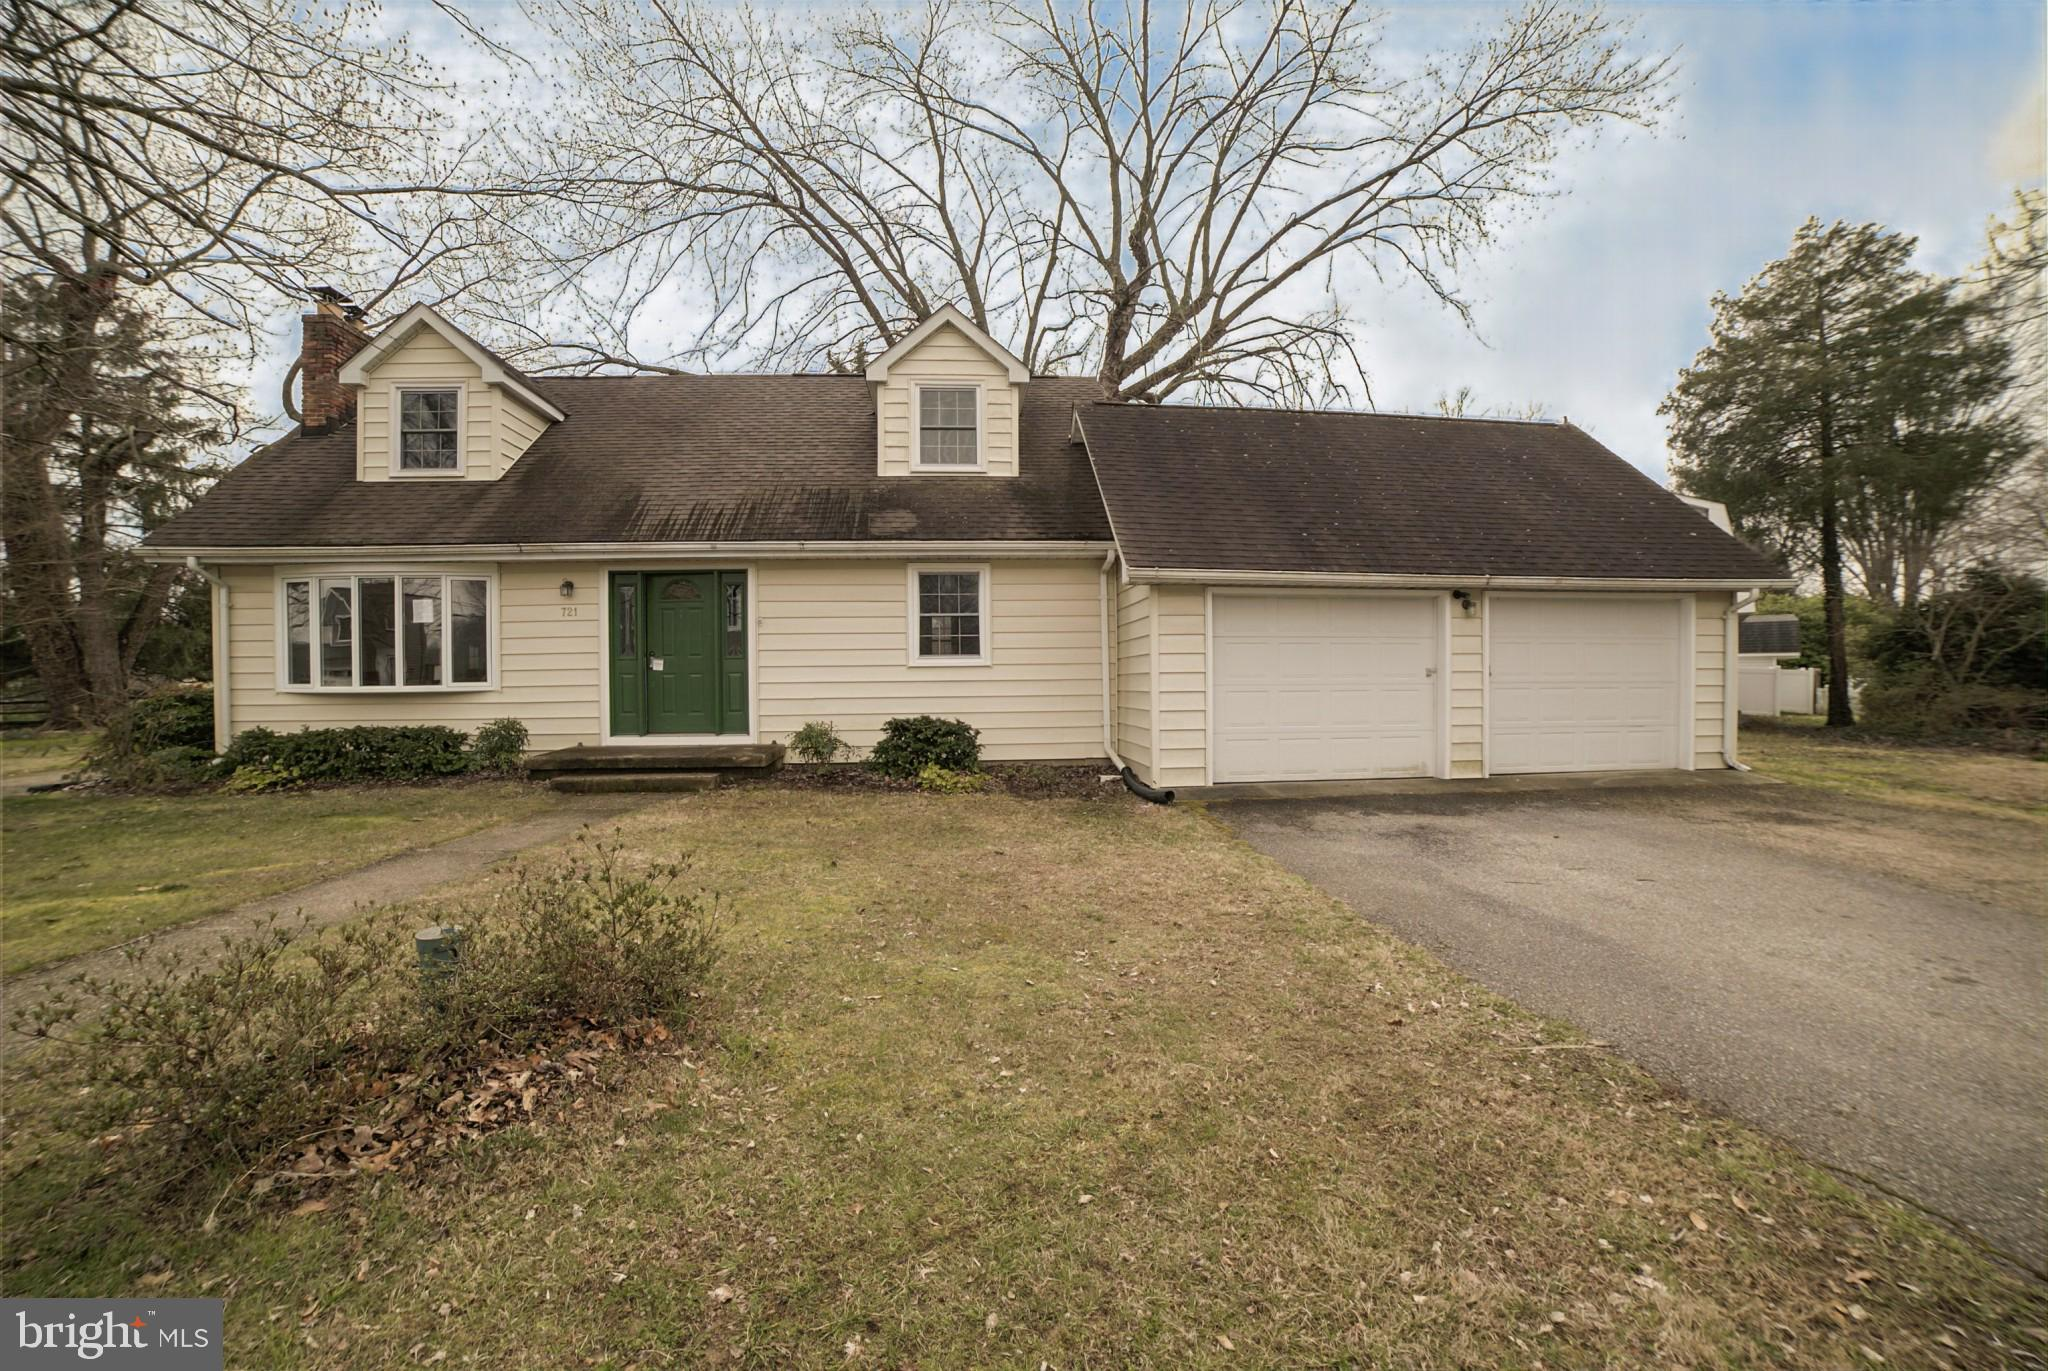 Great opportunity to own this single family home that offers a total of 3bedrooms and 2 baths and wa